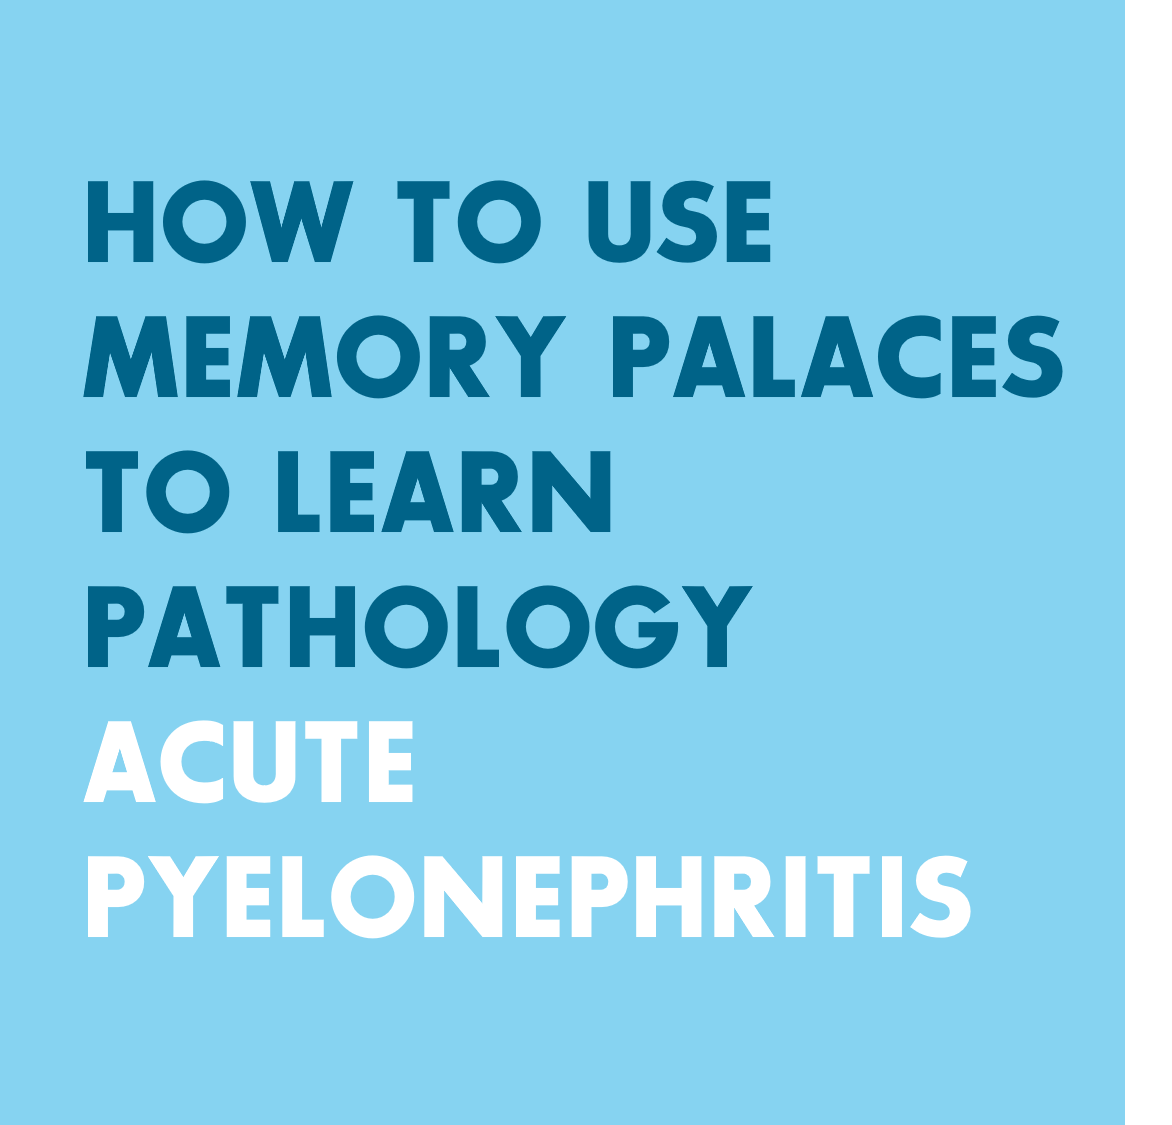 Palace of Memory: a description of the method for memorizing 20